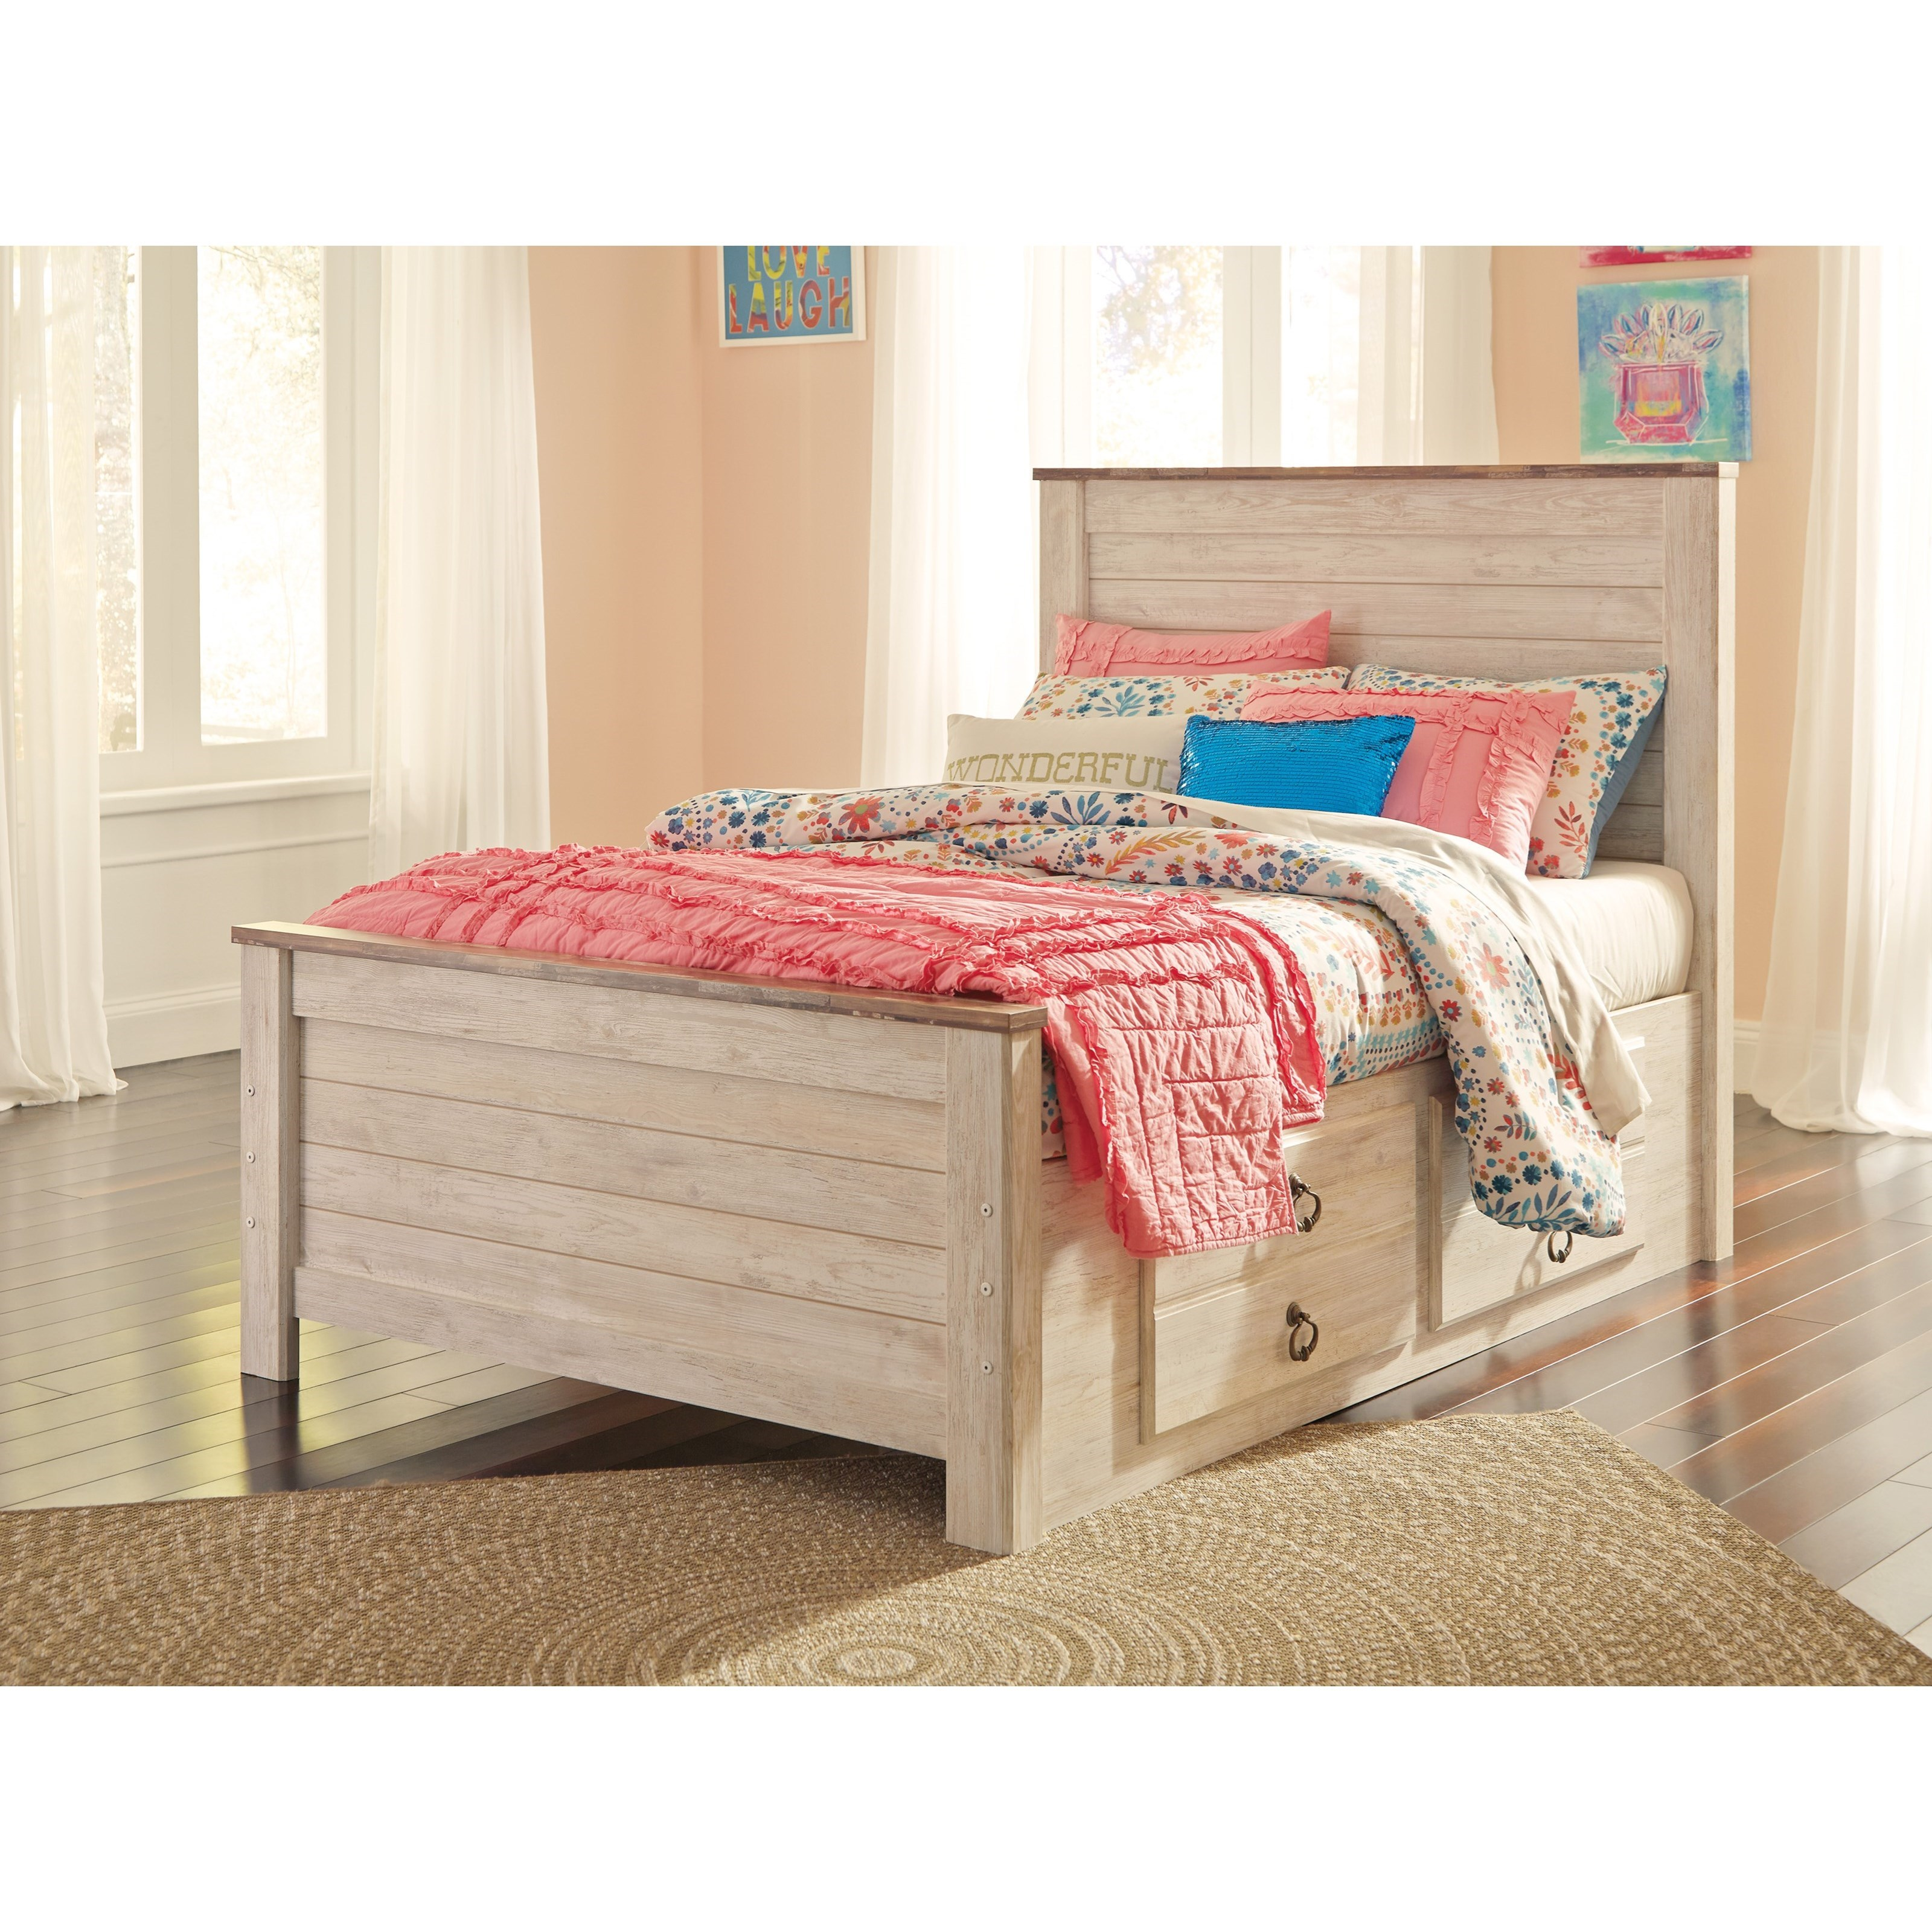 Willowton Full Bed with Underbed Storage Drawers by Ashley (Signature Design) at Johnny Janosik